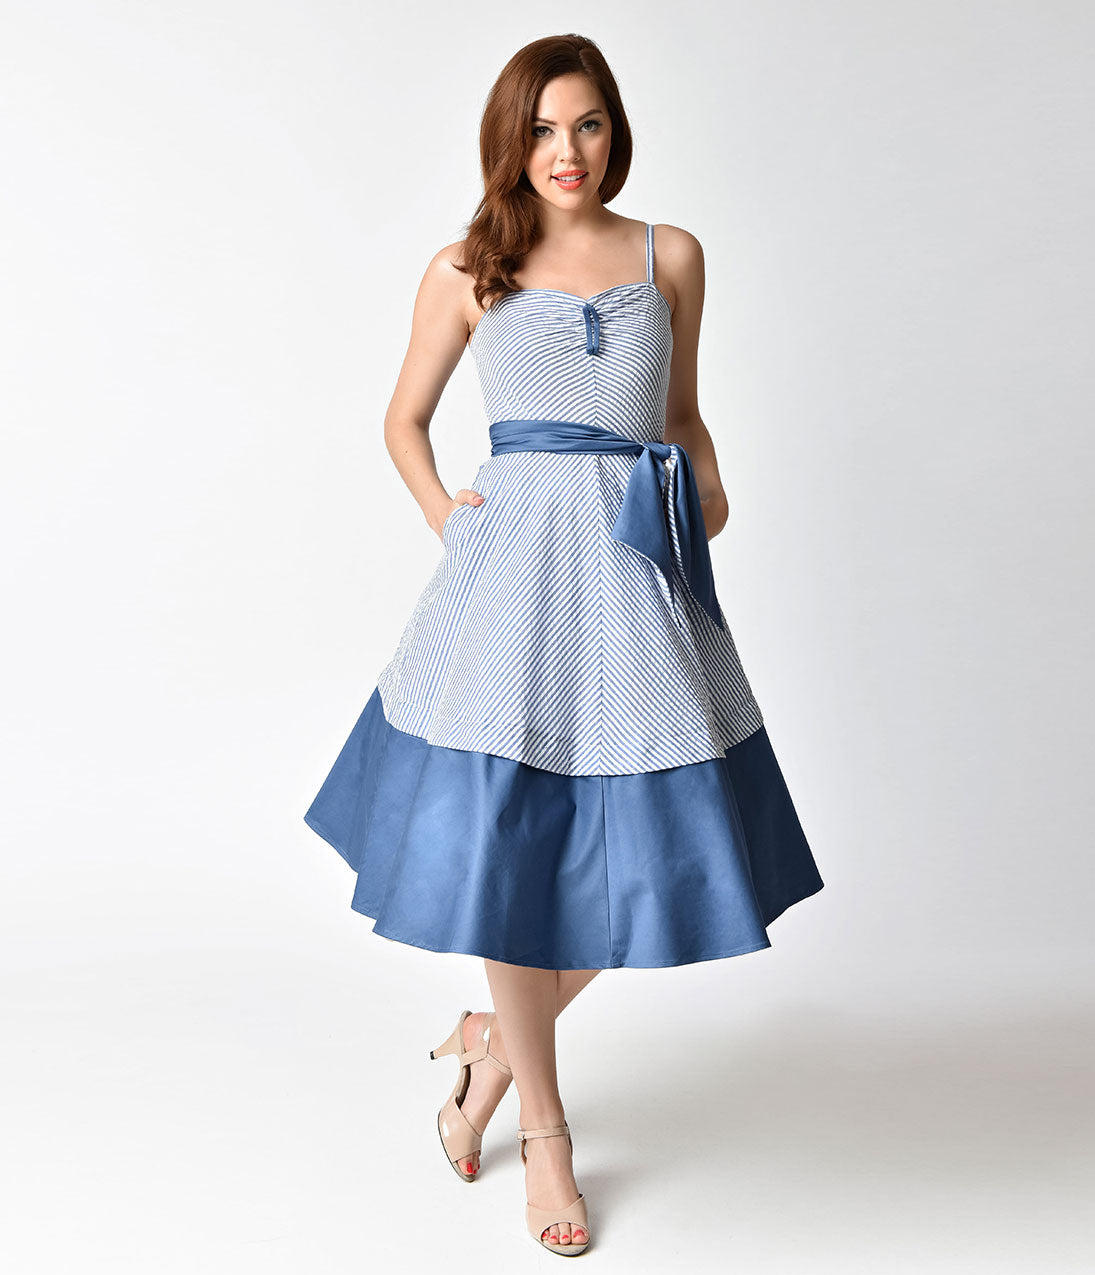 Sailor Dresses, Nautical Dress, Pin Up & WW2 Dresses 1940s Style Blue  White Striped Seersucker Lonestar Swing Dress $36.00 AT vintagedancer.com